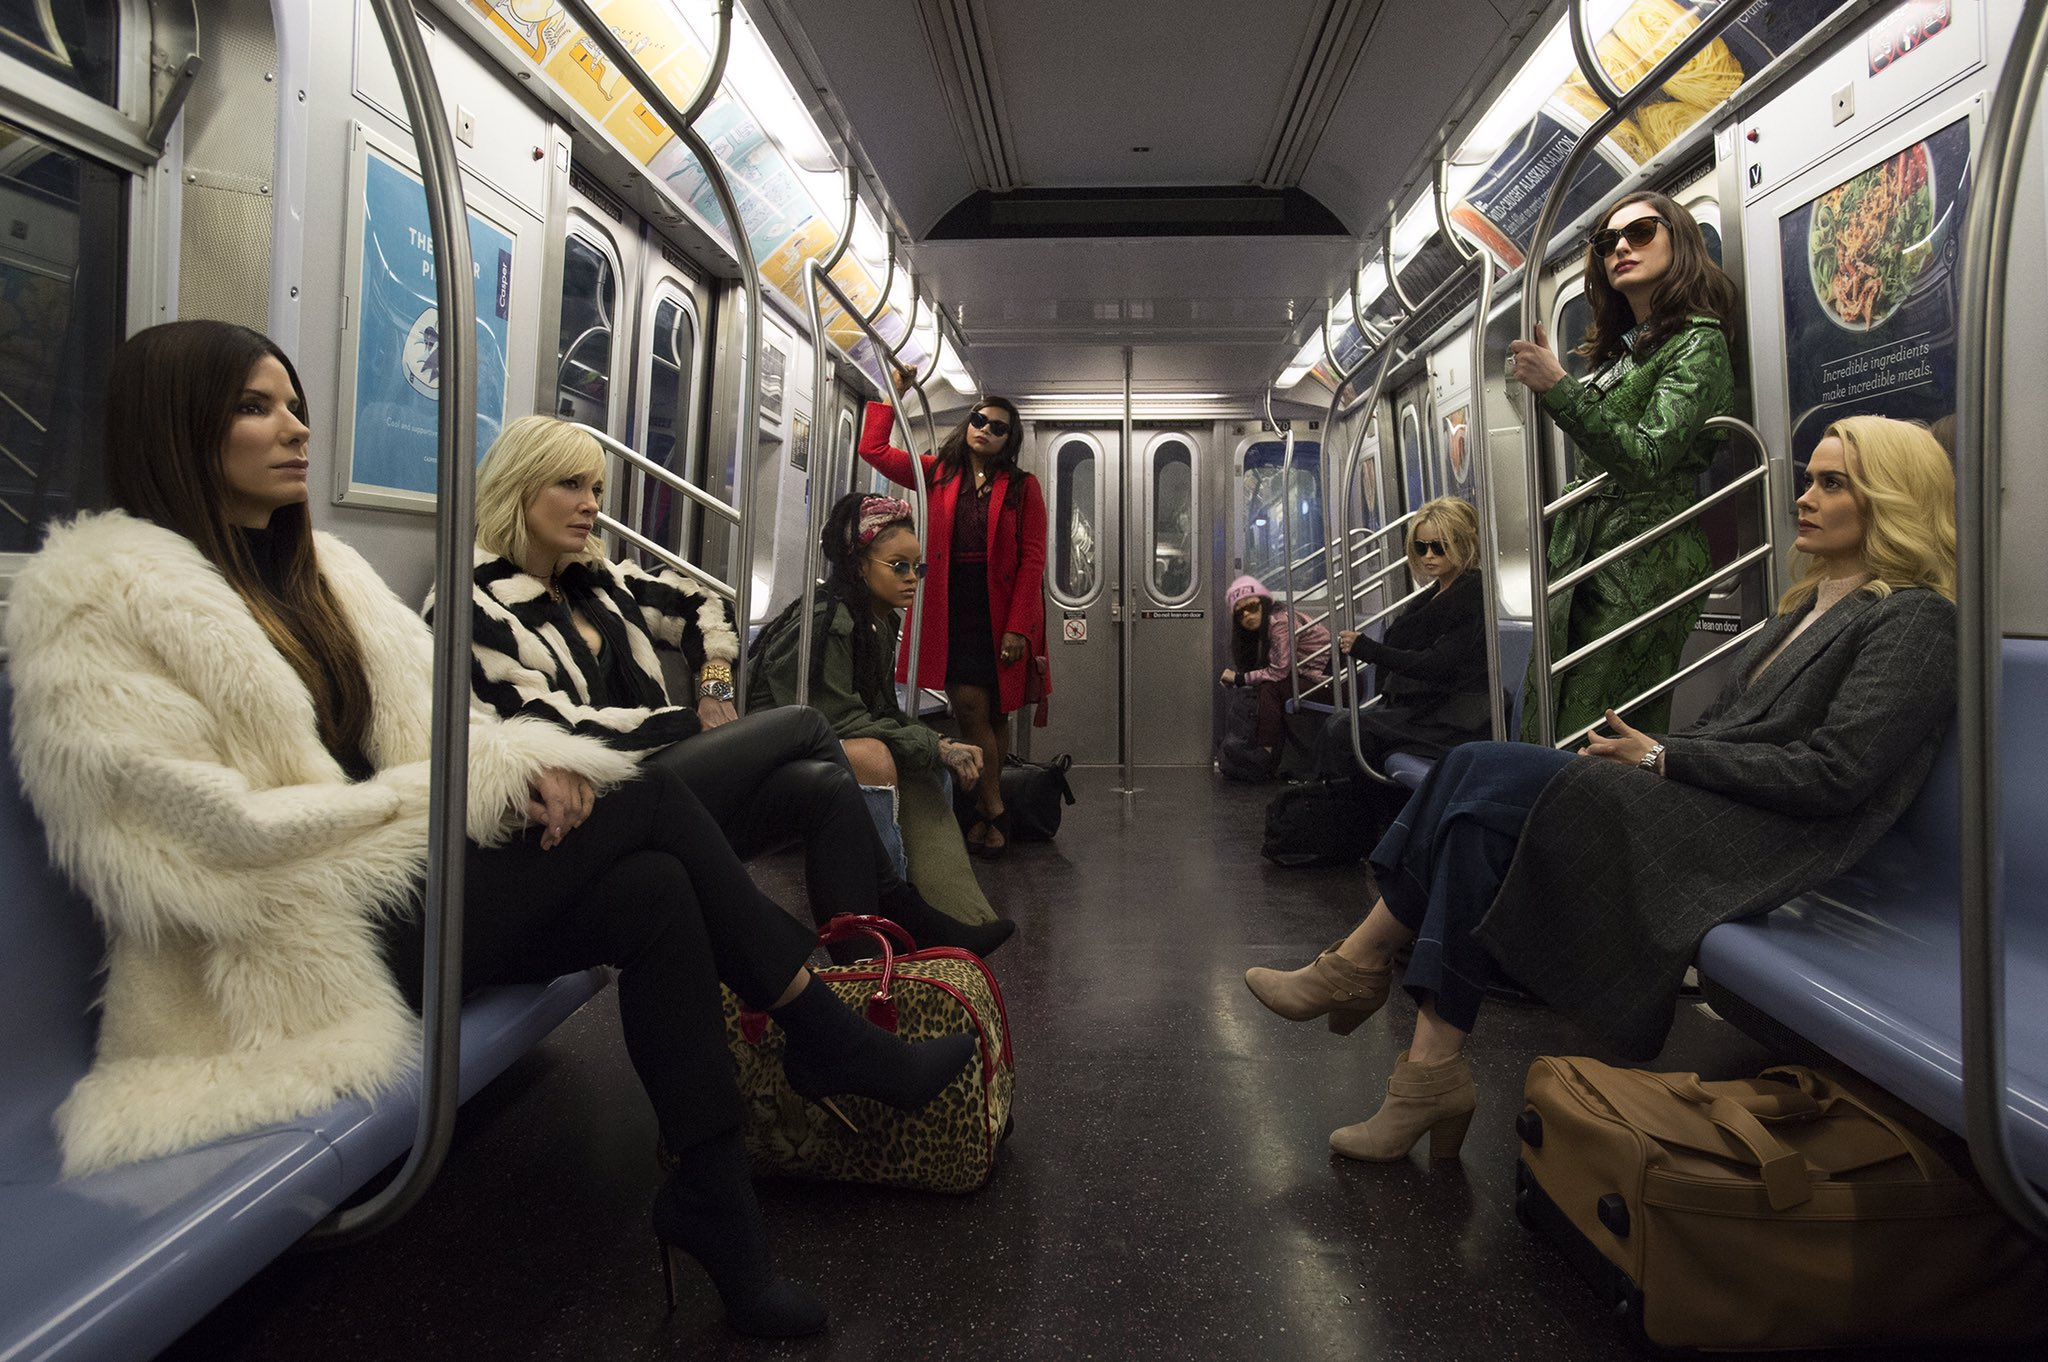 First looQ at #Oceans8. Coming summer 2018. https://t.co/NNbgolsnWu